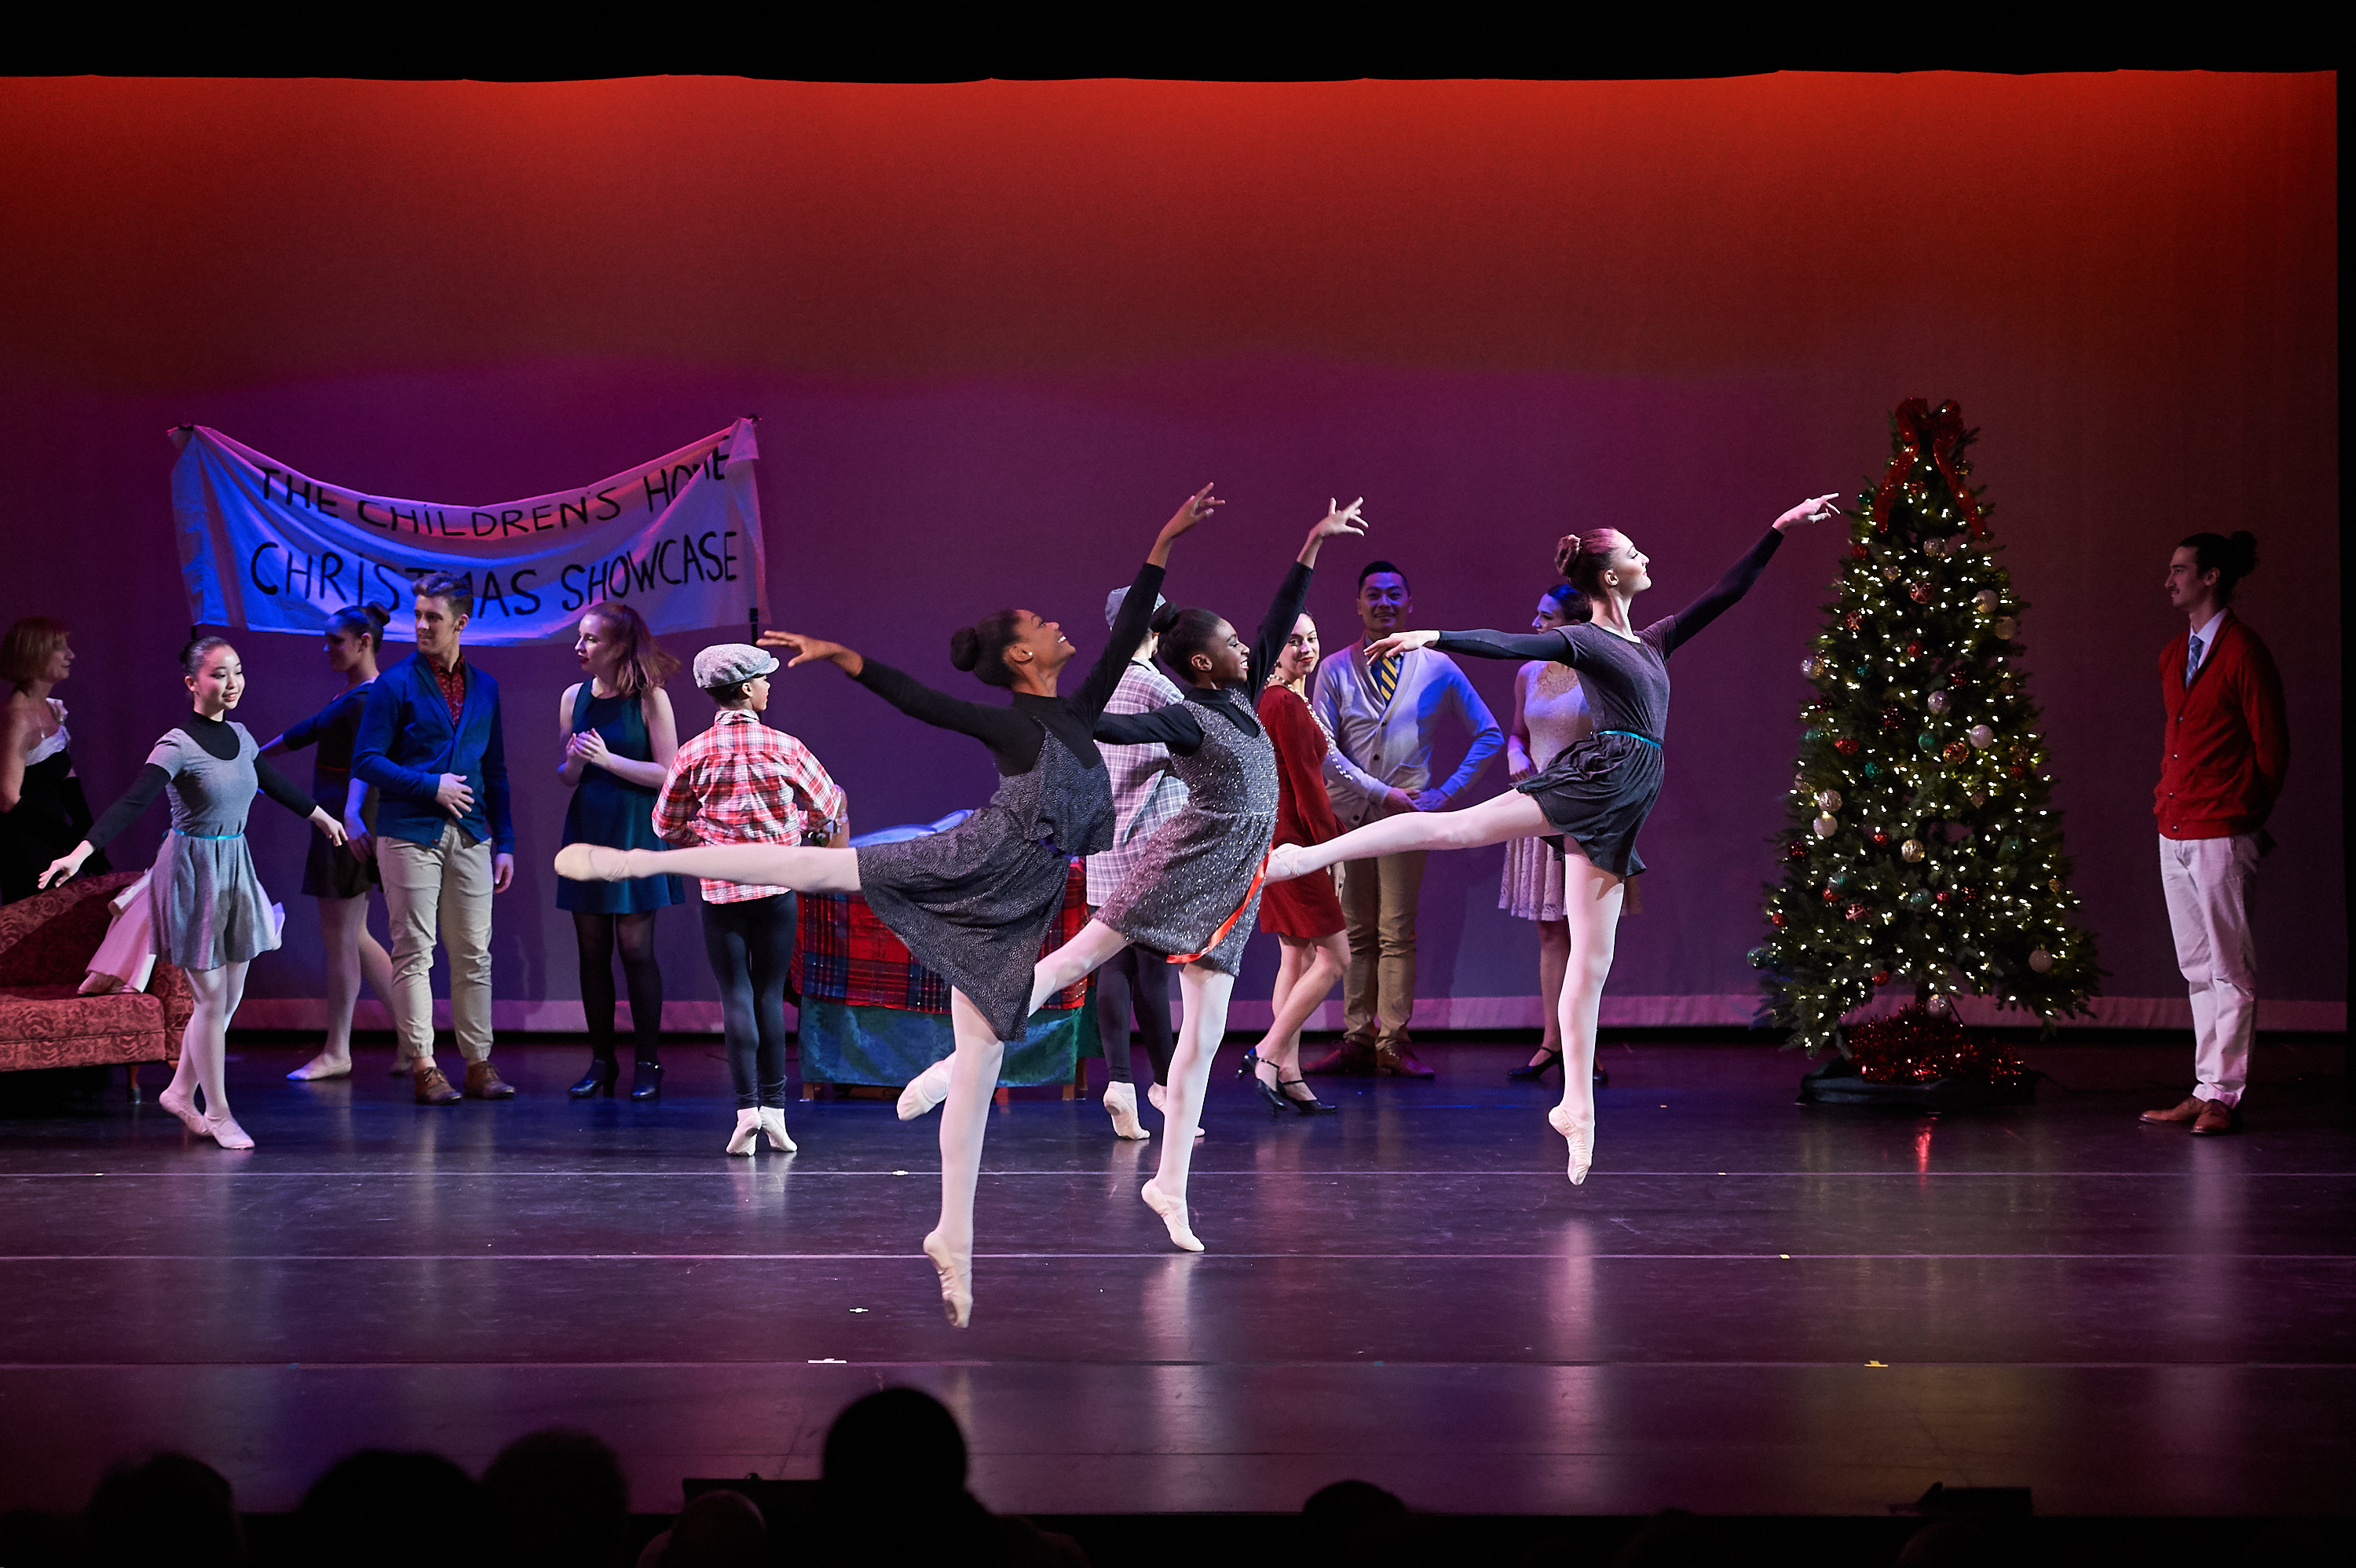 20171202_NYDance_Nutcracker_2pm_00182